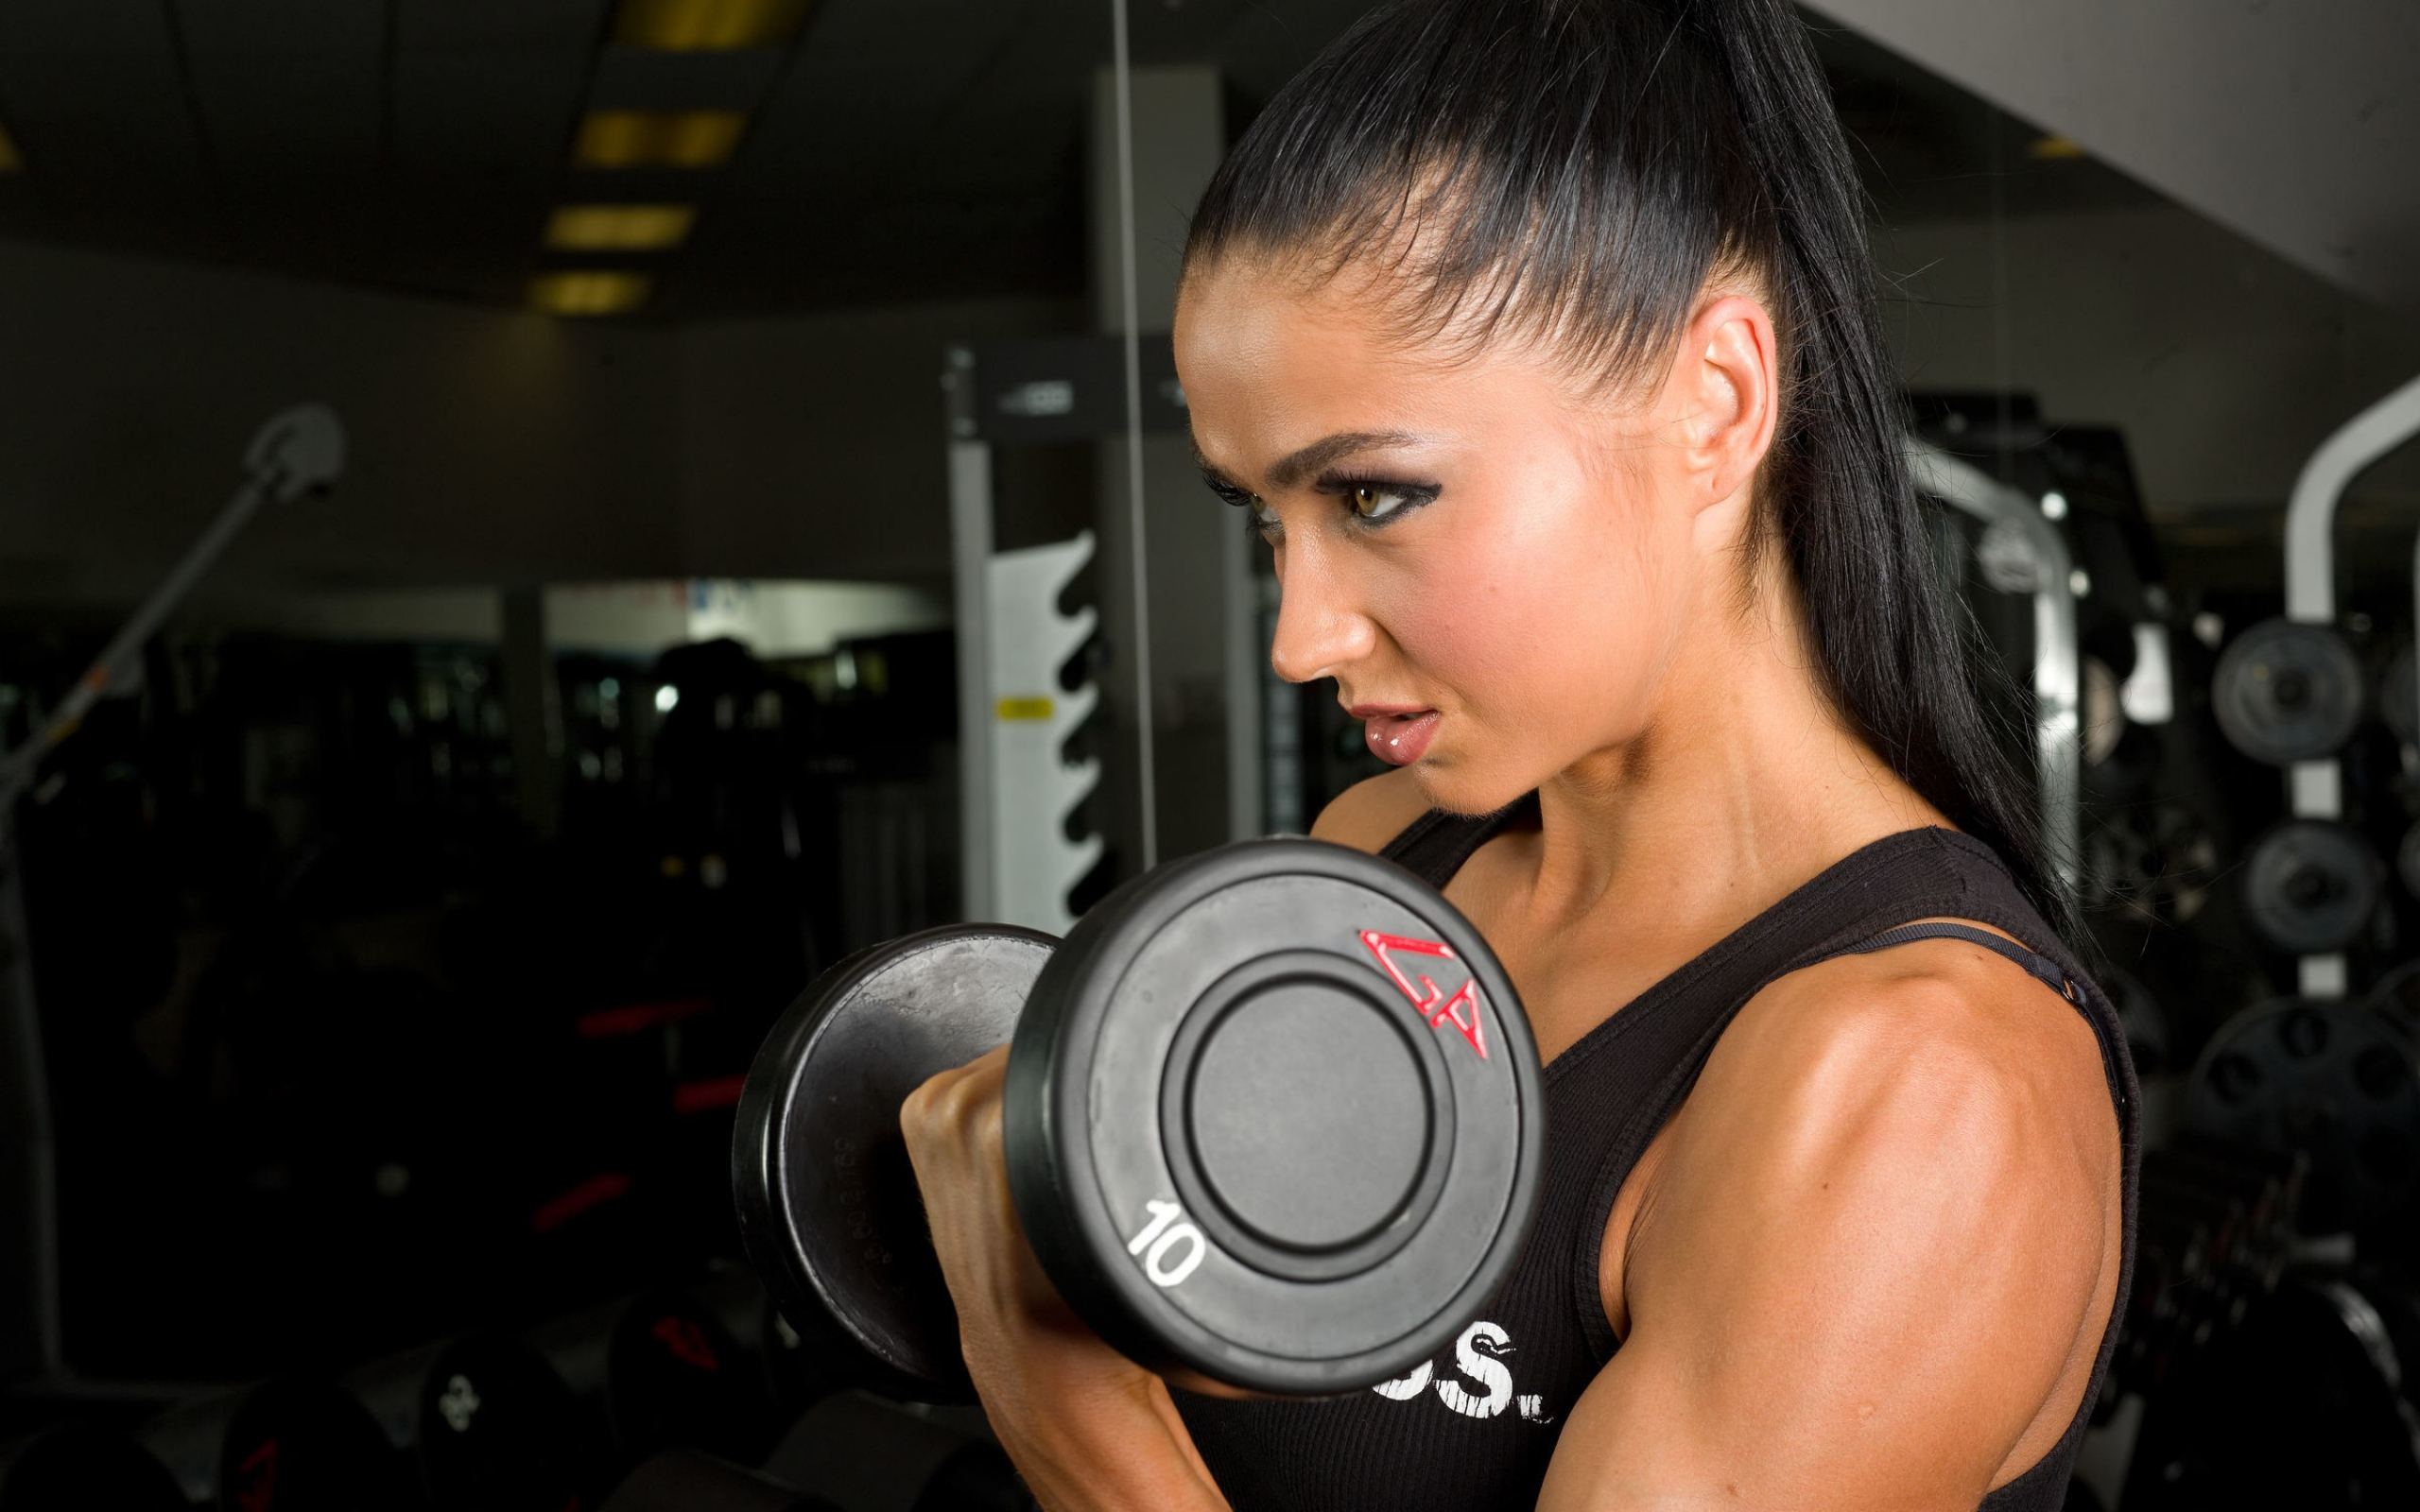 Body Building Fitness Model Weights Brunette HD Wallpapers 2560x1600